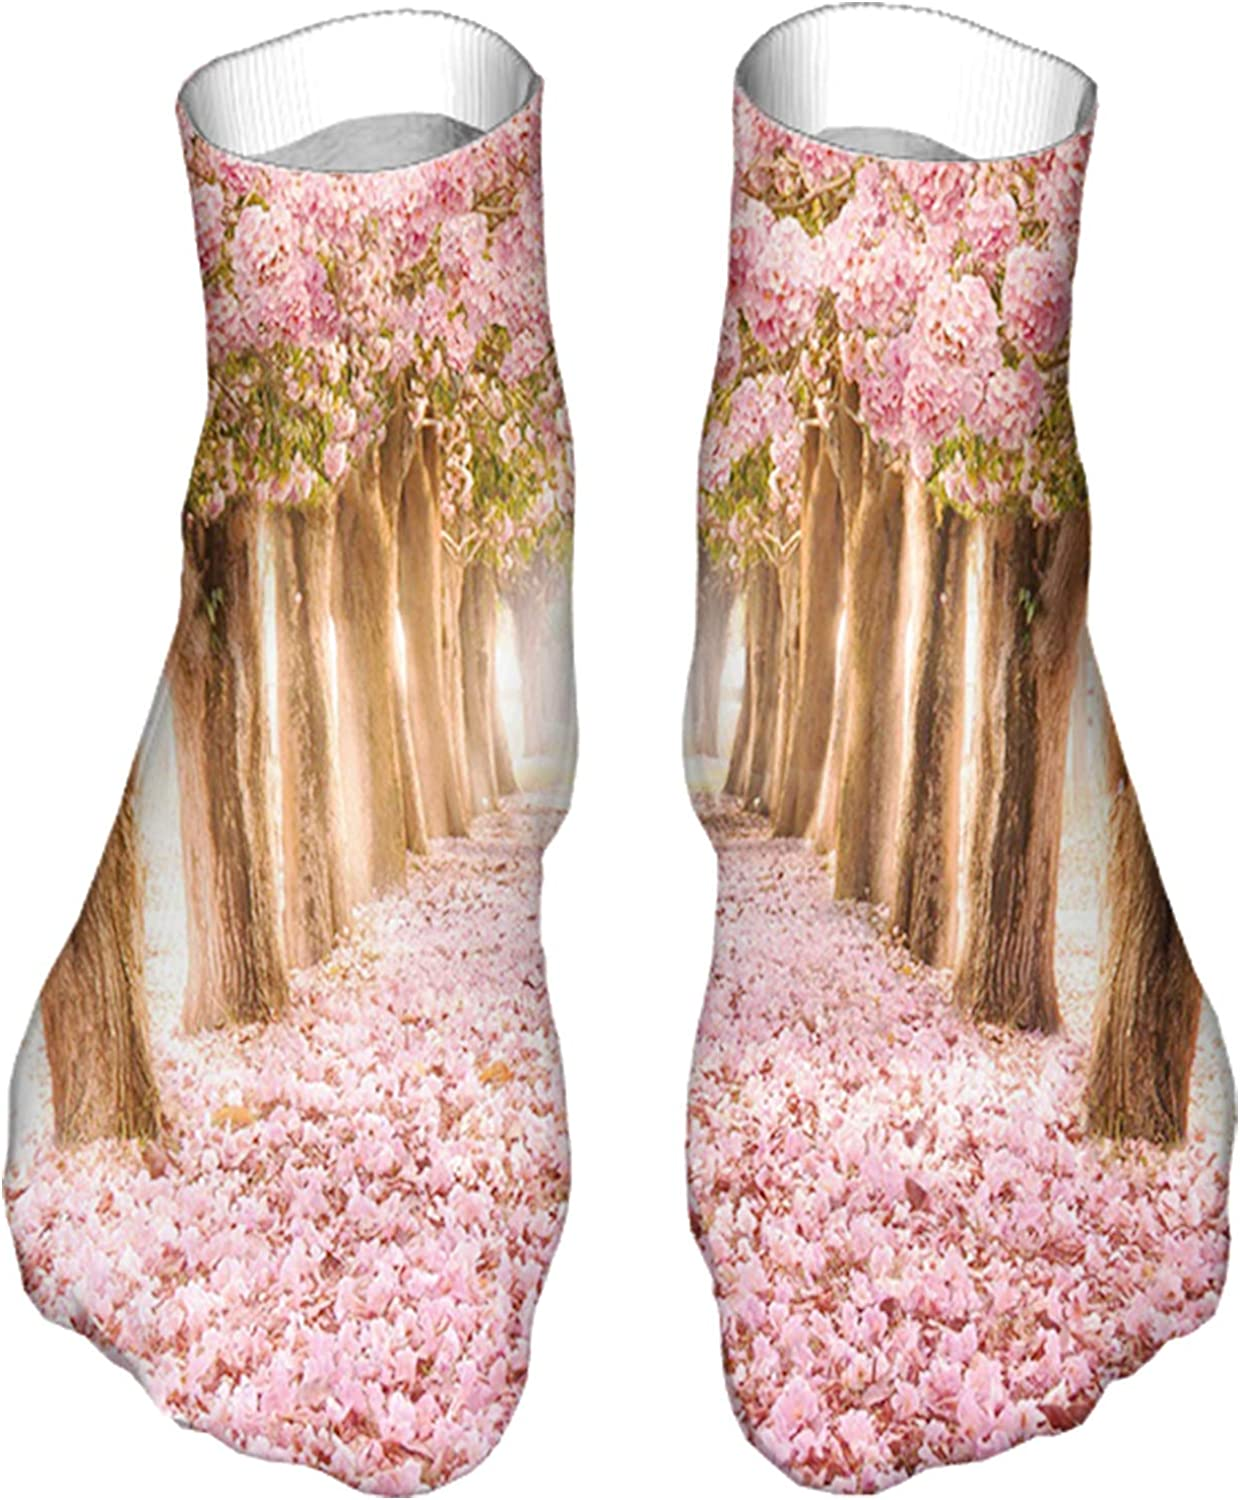 Men's and Women's Fun Socks Printed Cool Novelty Funny Socks,Lovely Picture with Falling Petals Floral Tunnel of Love